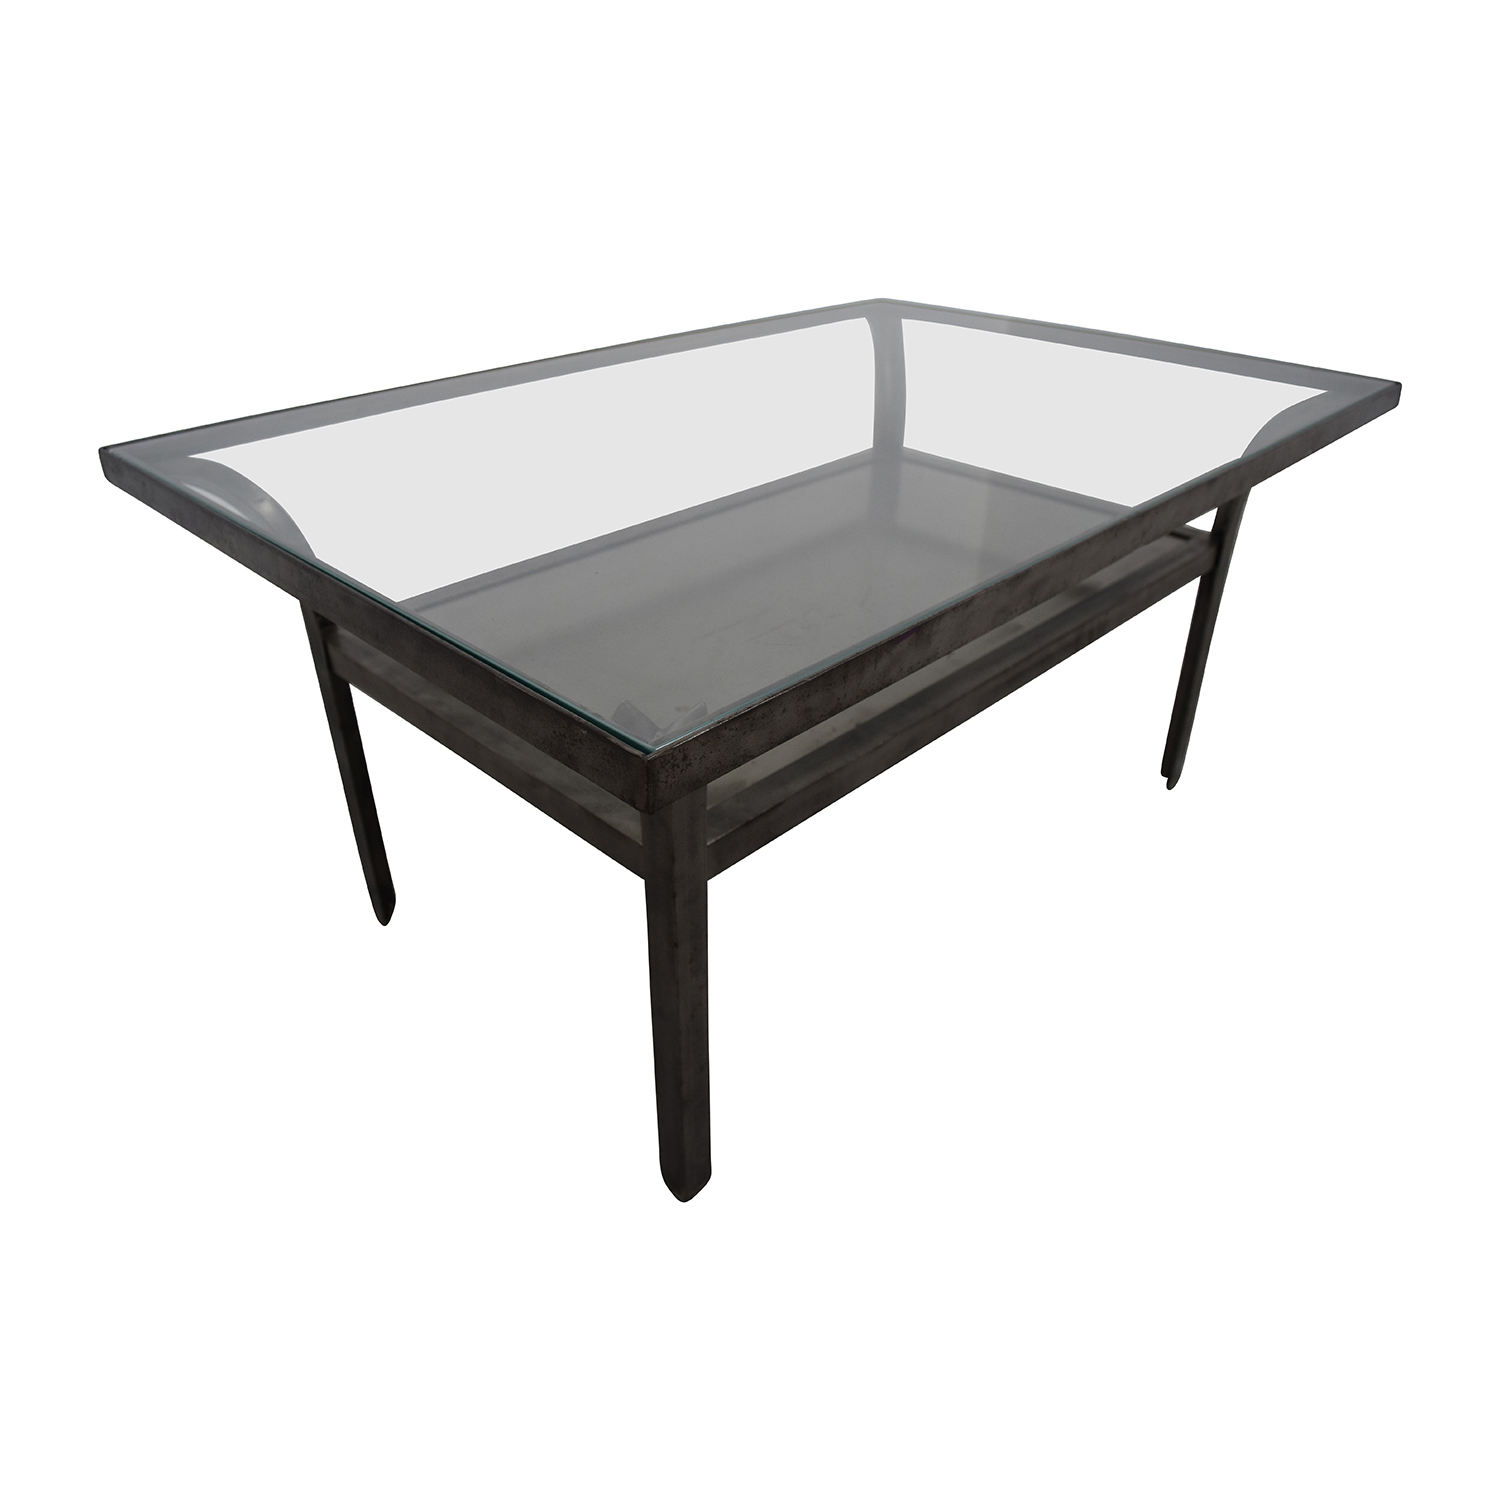 Crate And Barrel Black Marble Coffee Table: Crate And Barrel Crate And Barrel Metal And